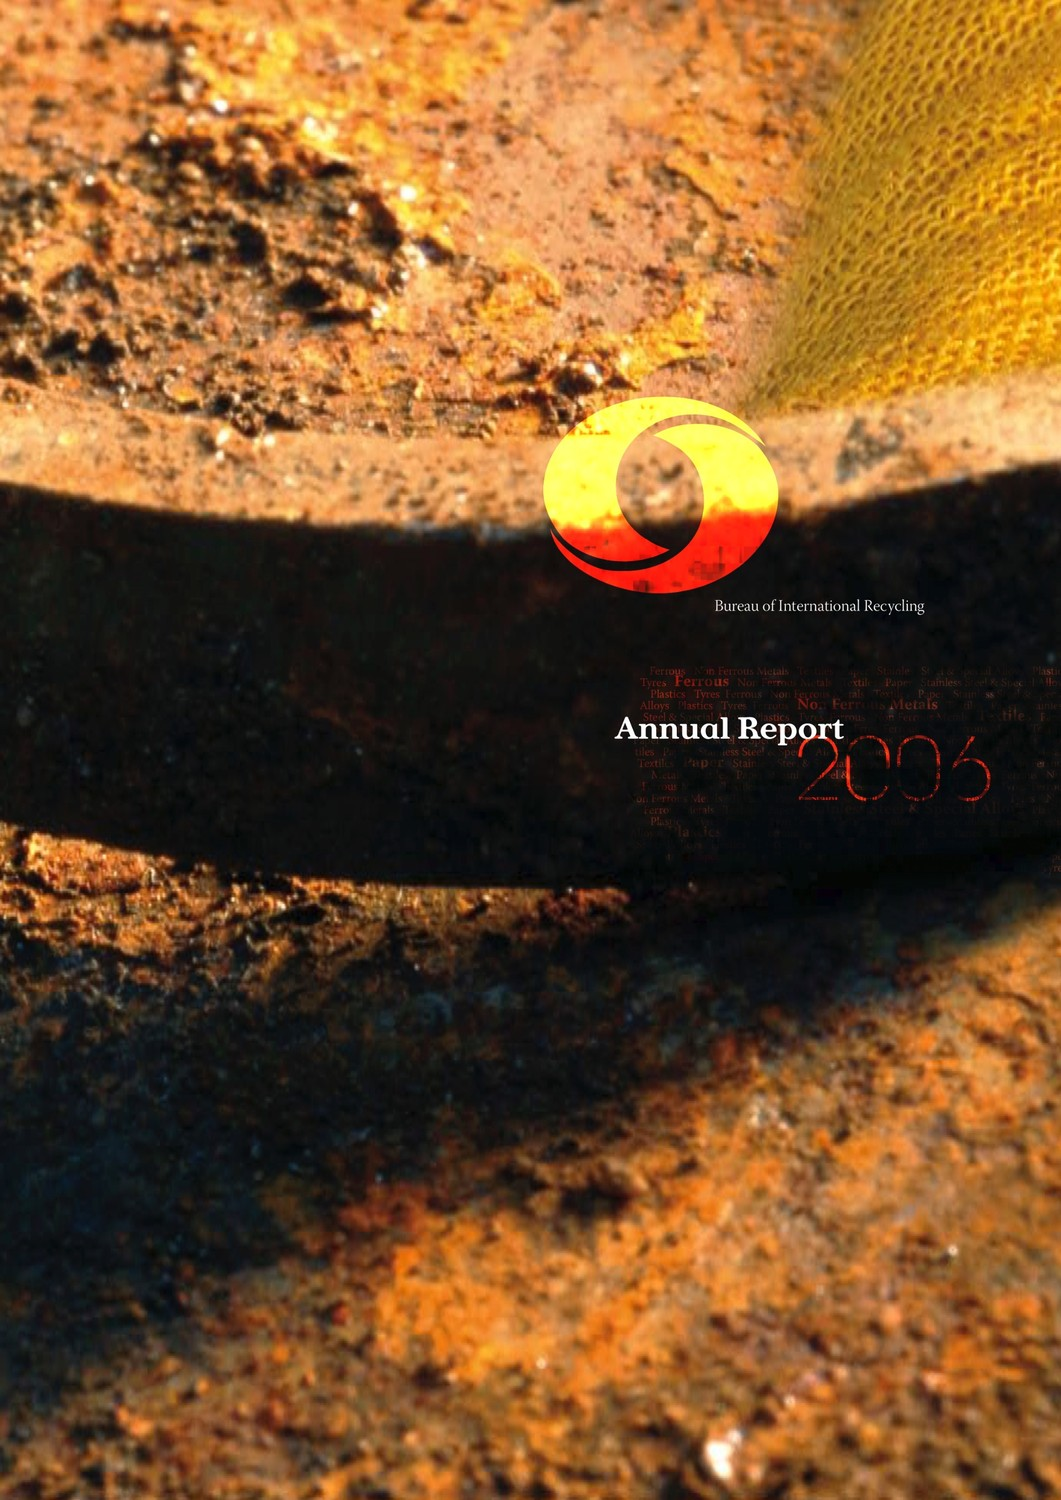 BIR Annual Report 2006